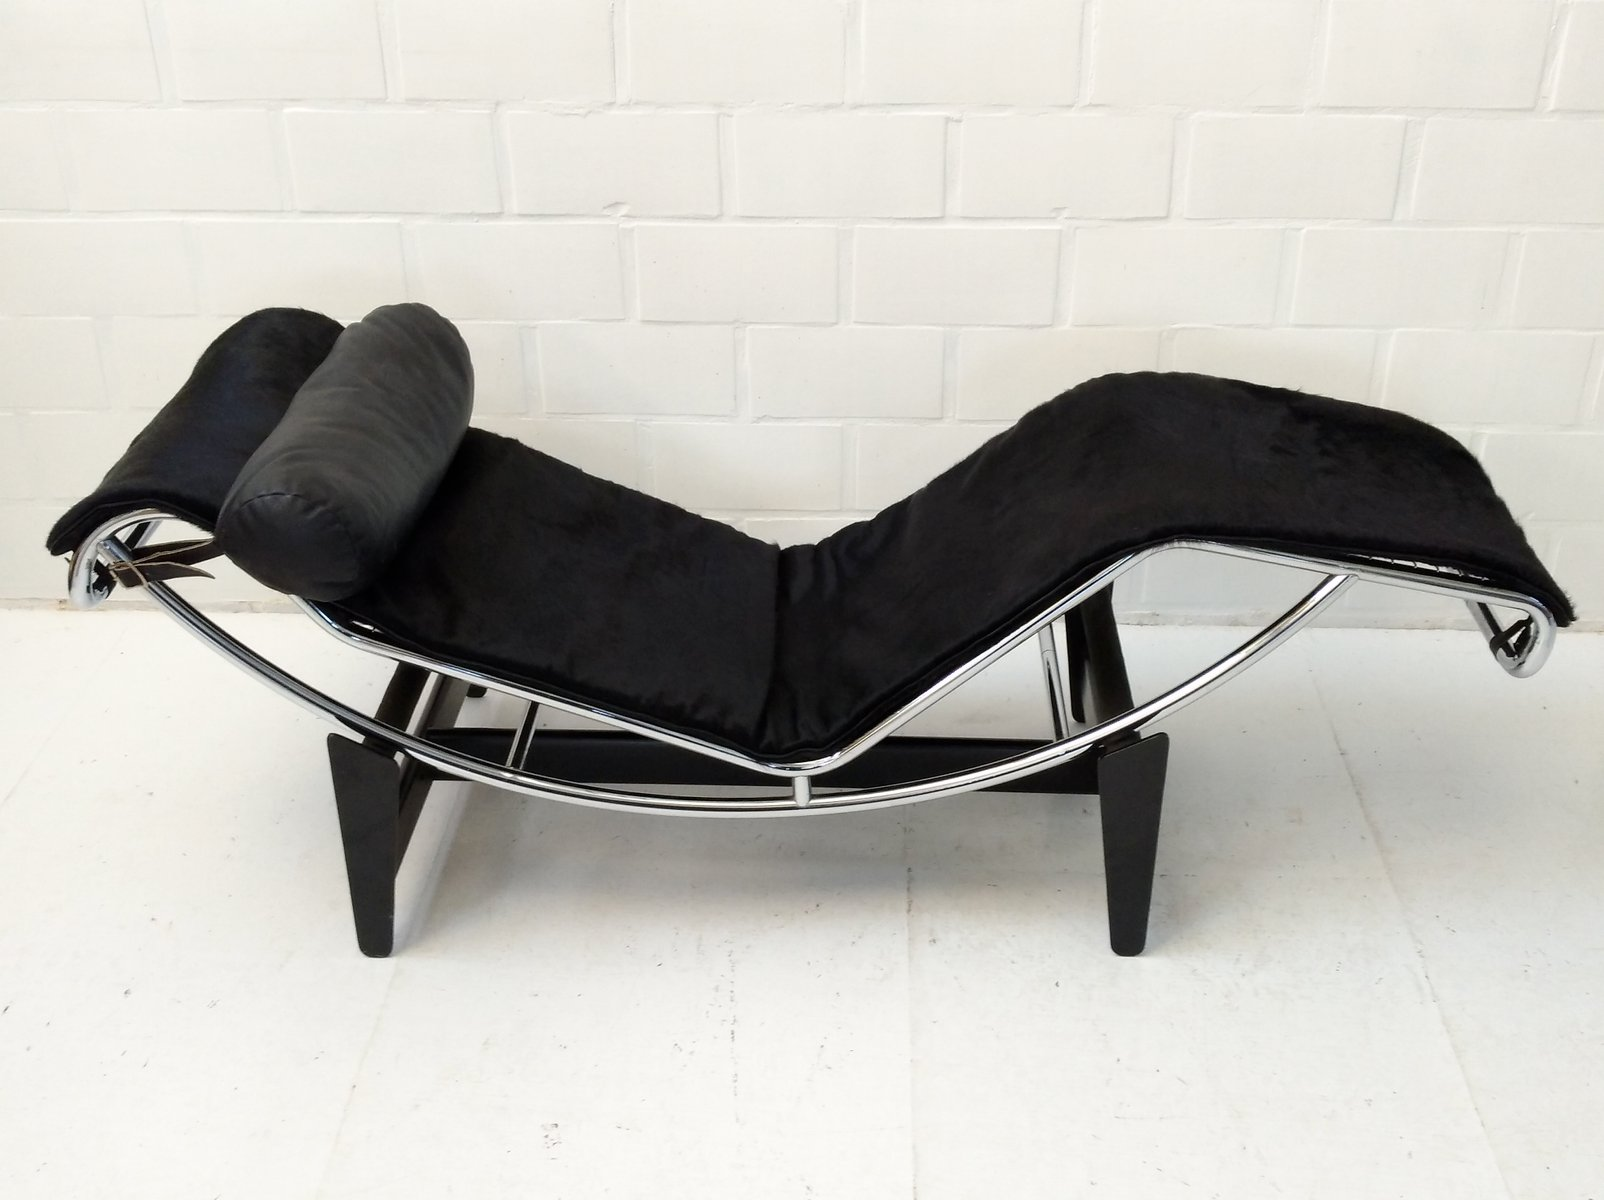 Early lc4 chaise longue by le corbusier perriand for Chaise longue le corbusier wikipedia